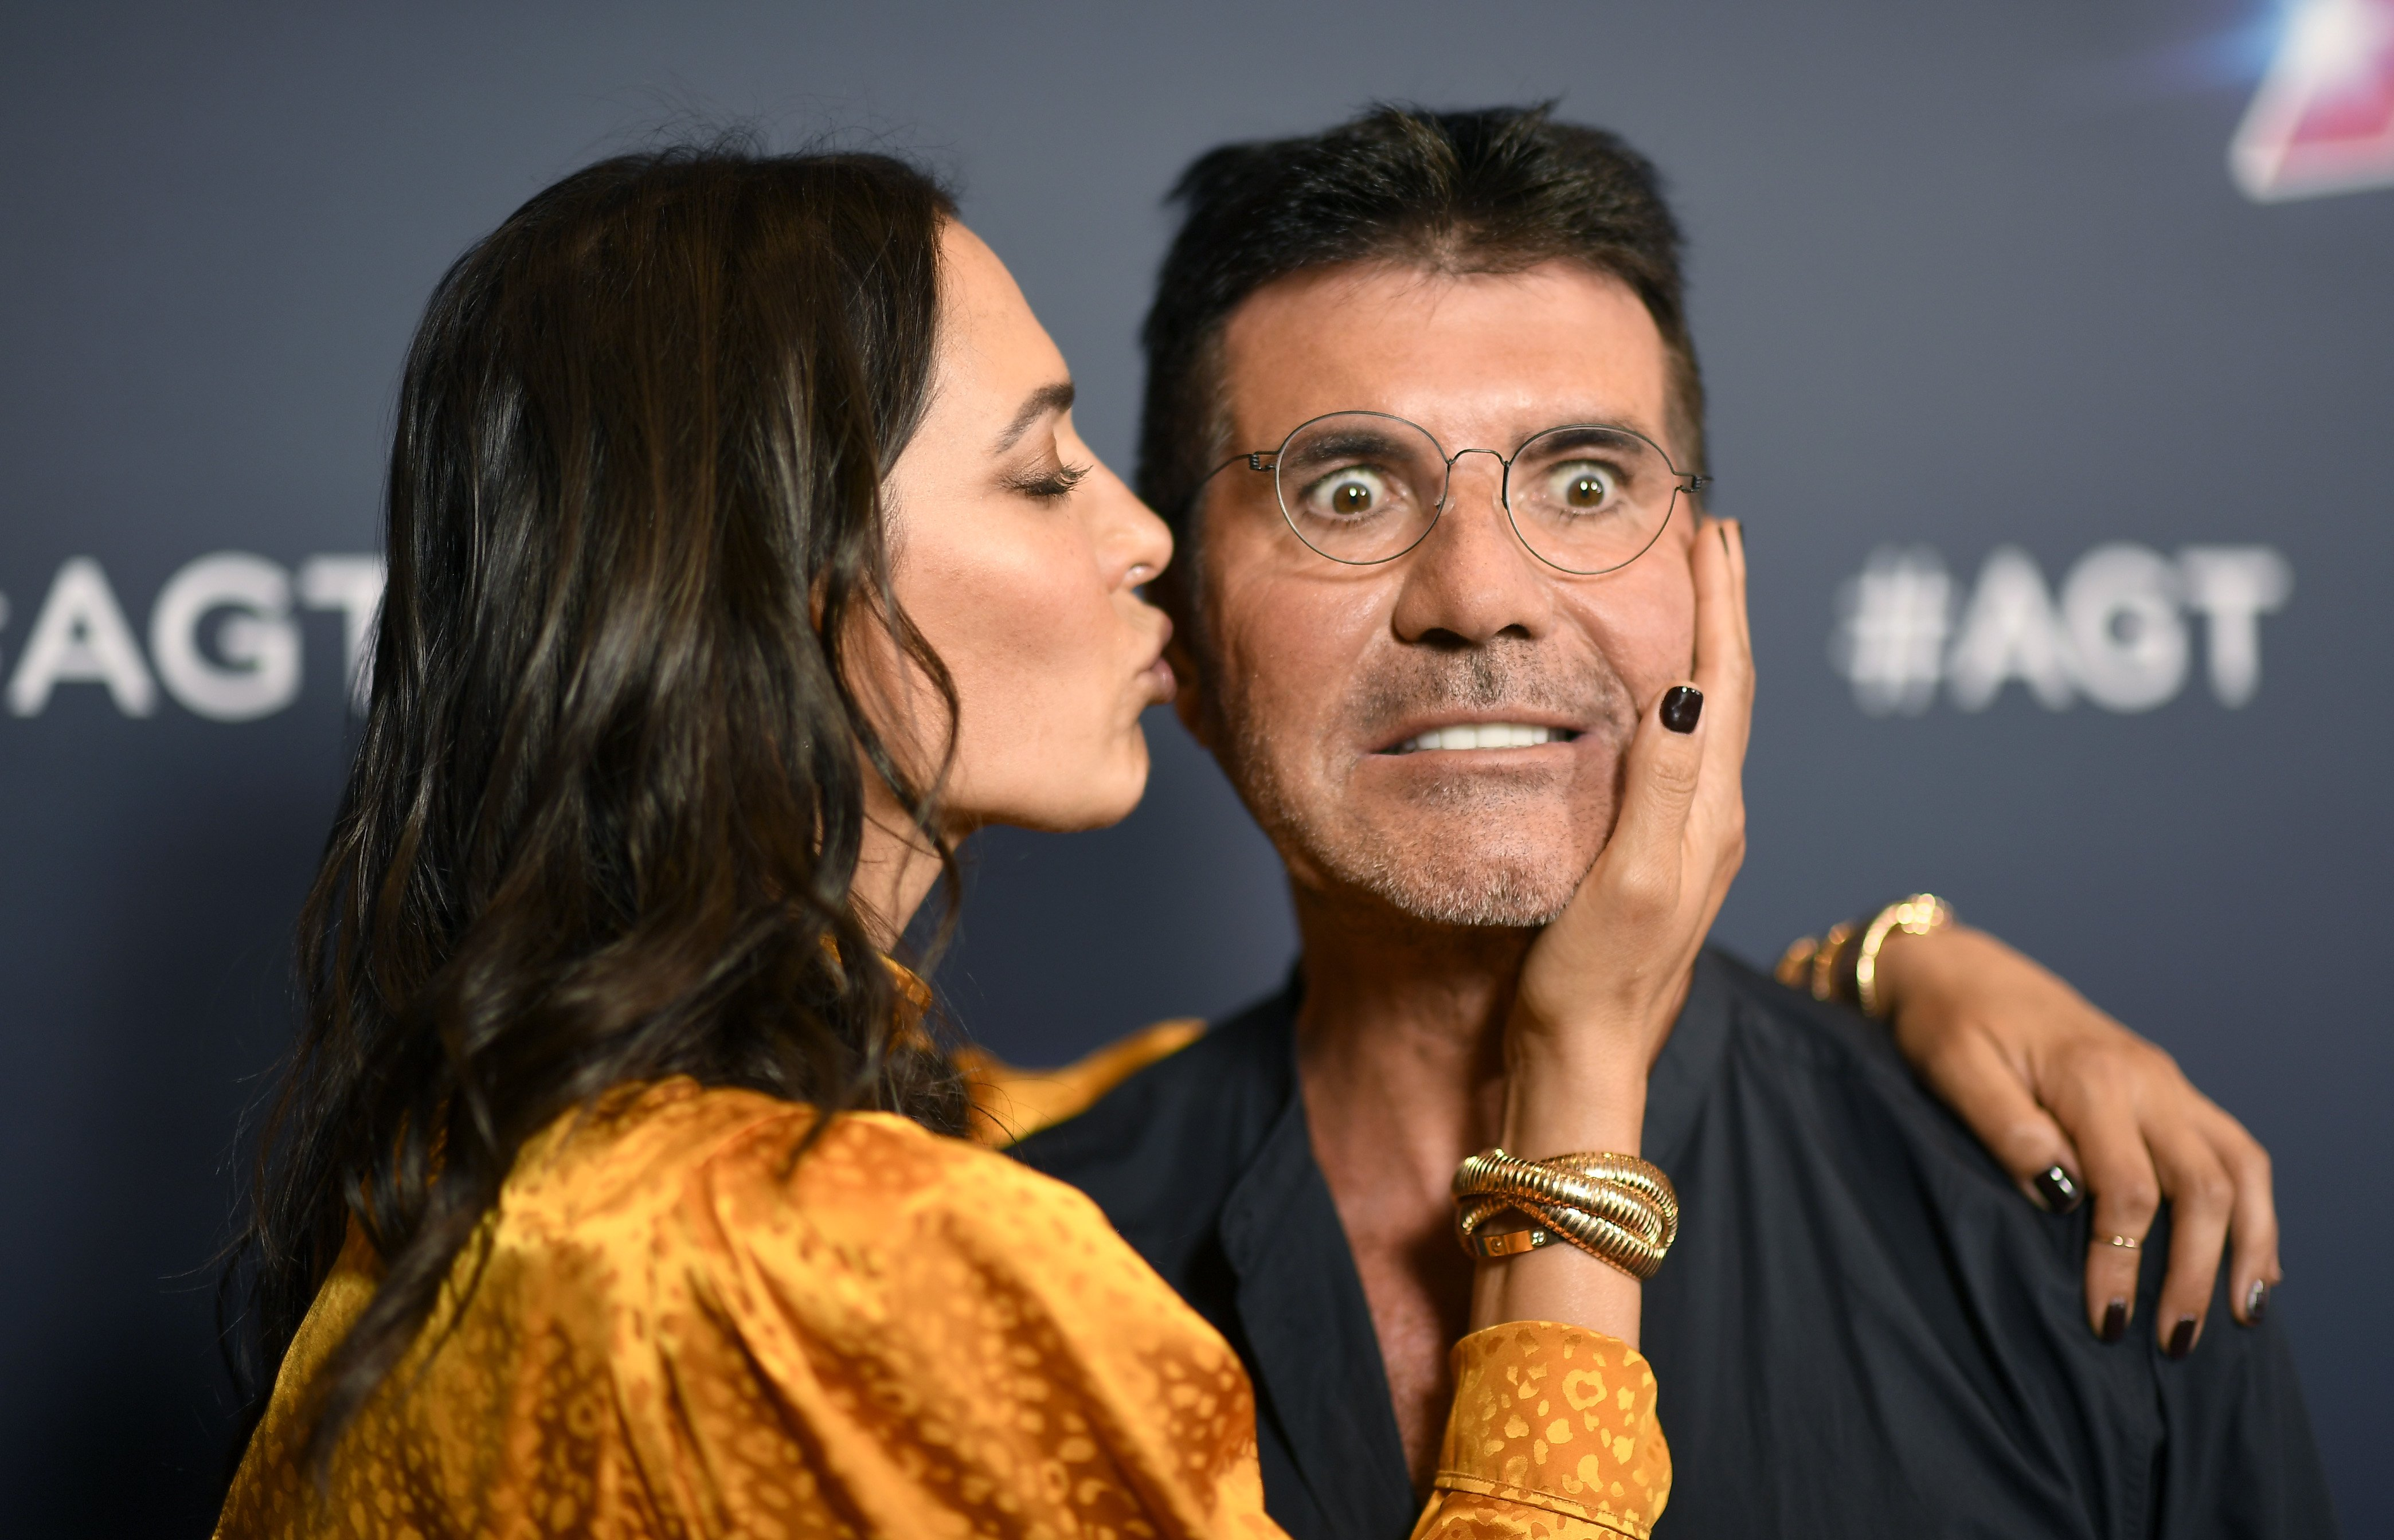 """Lauren Silverman and Simon Cowell attends Red Carpet for """"America's Got Talent"""" in Hollywood on September 17, 2019 